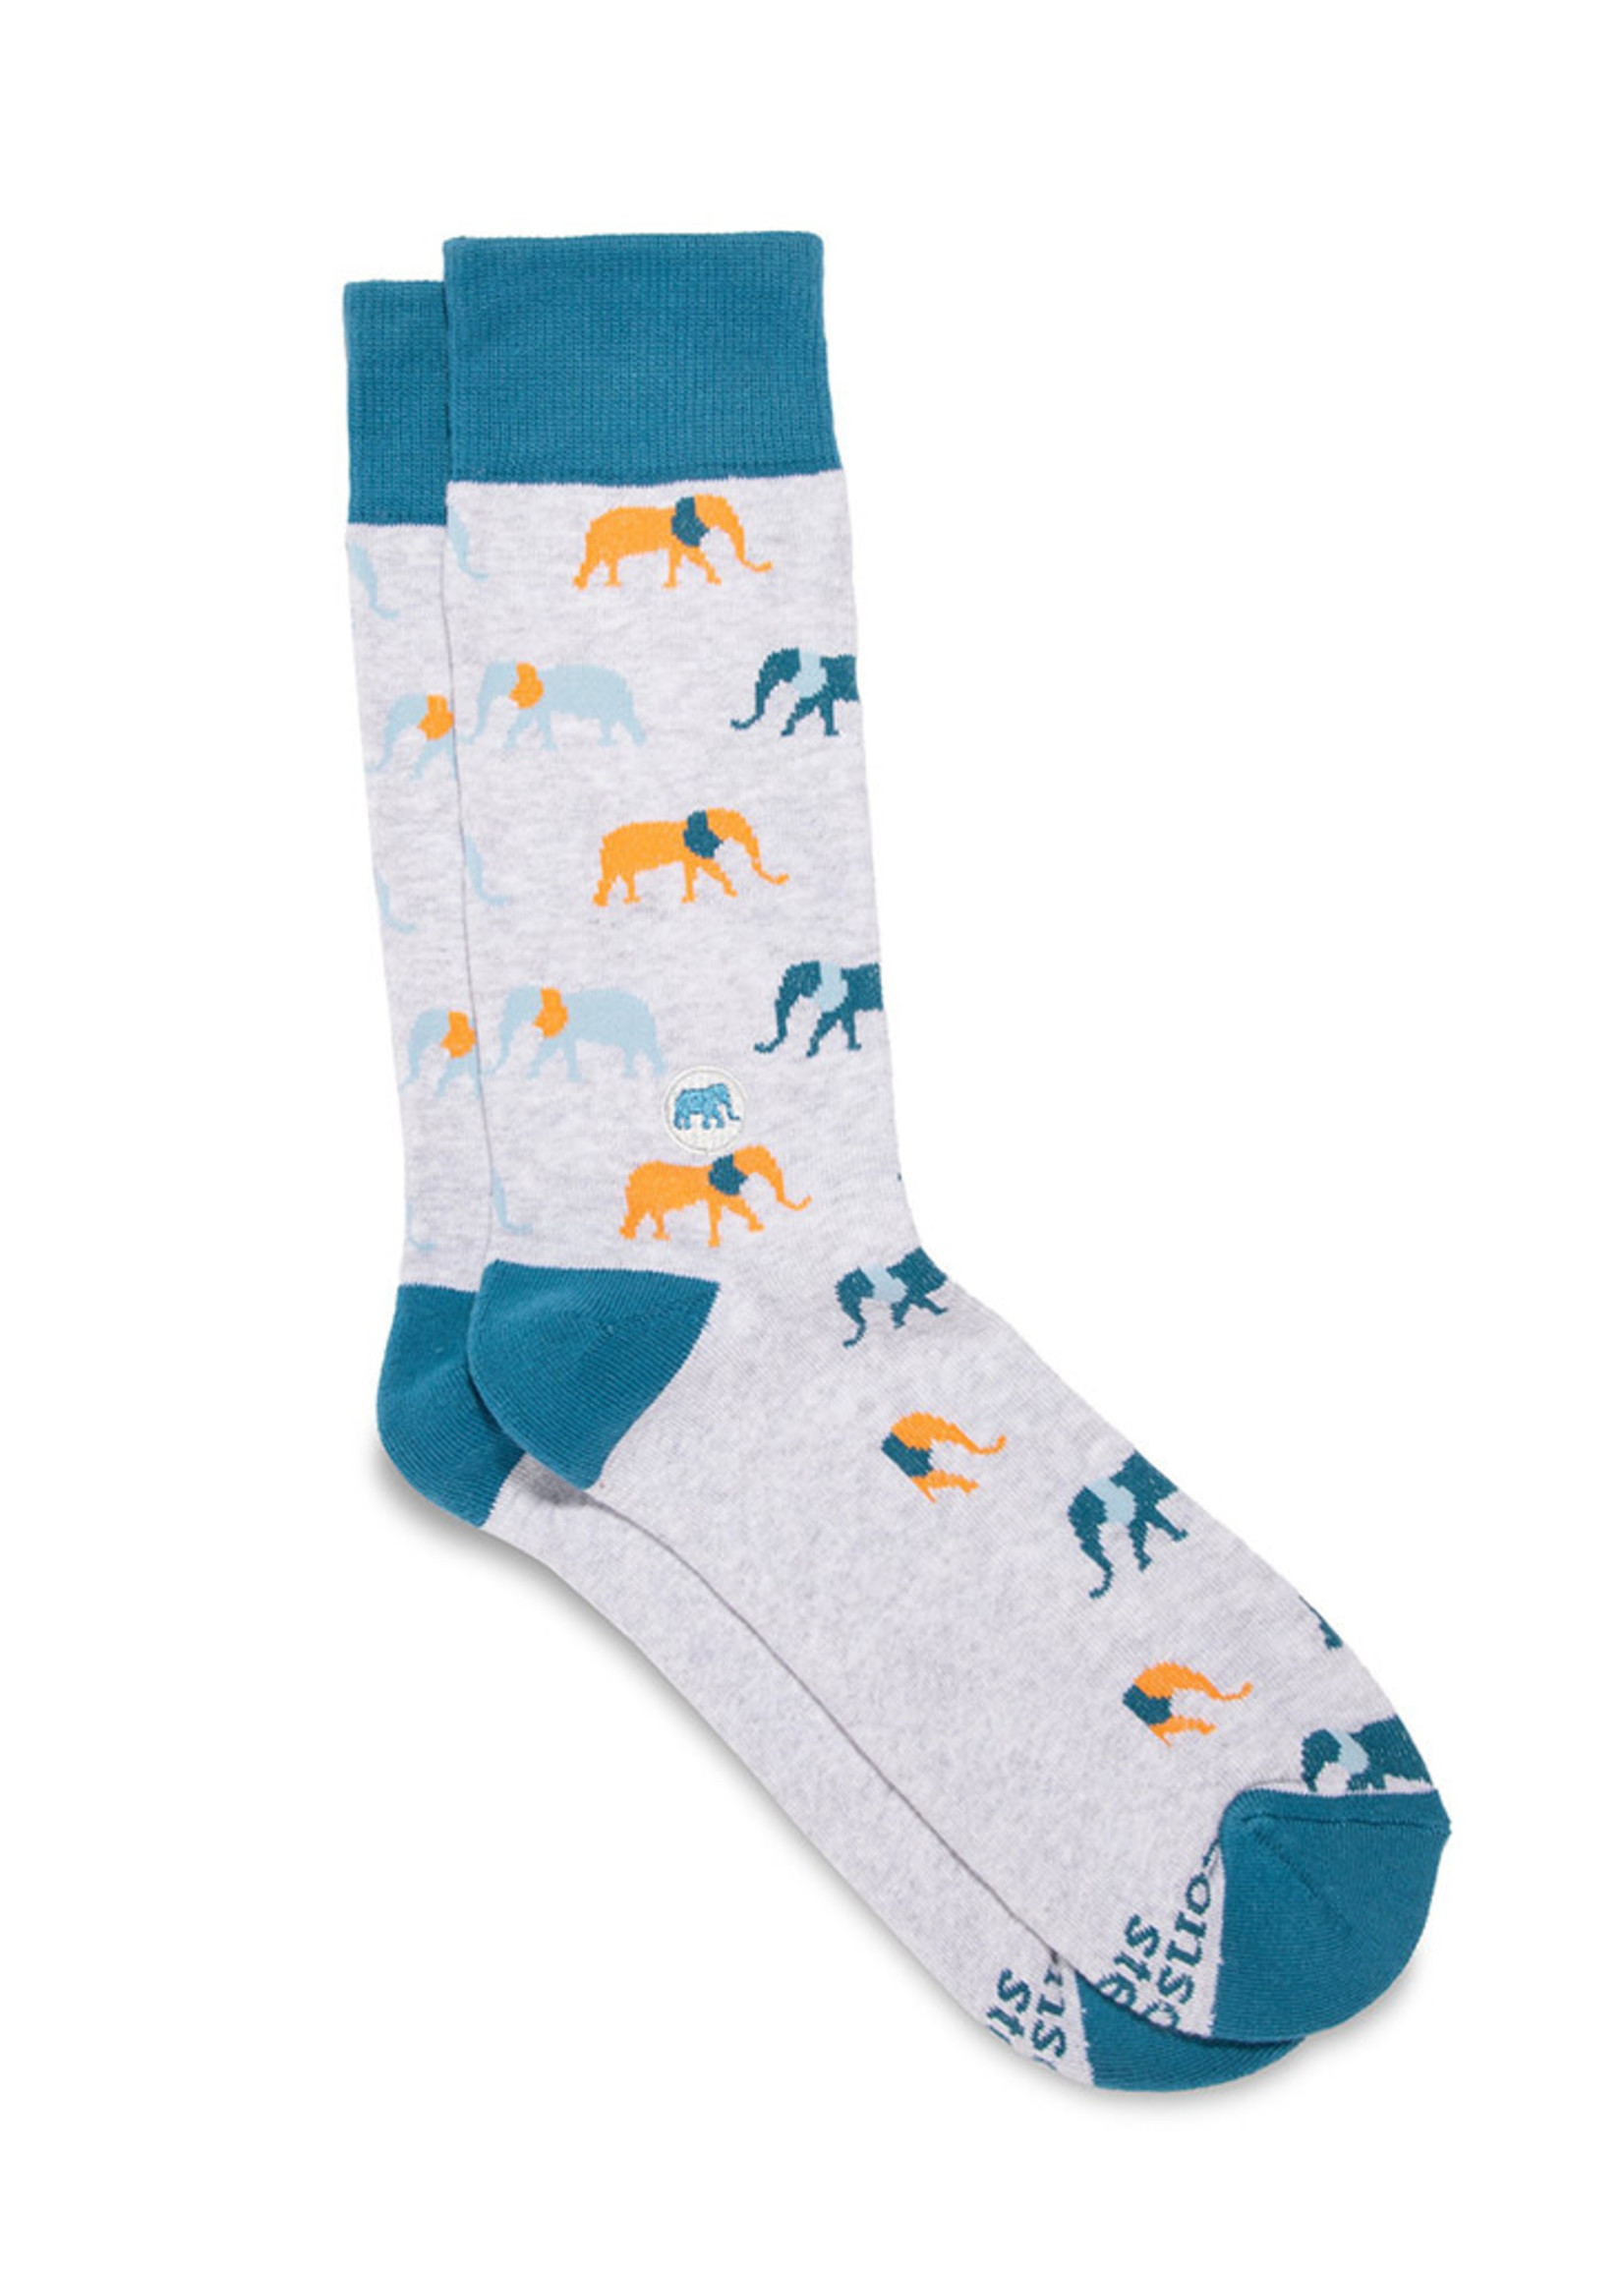 Conscious Step Women's Socks that Protects Elephants